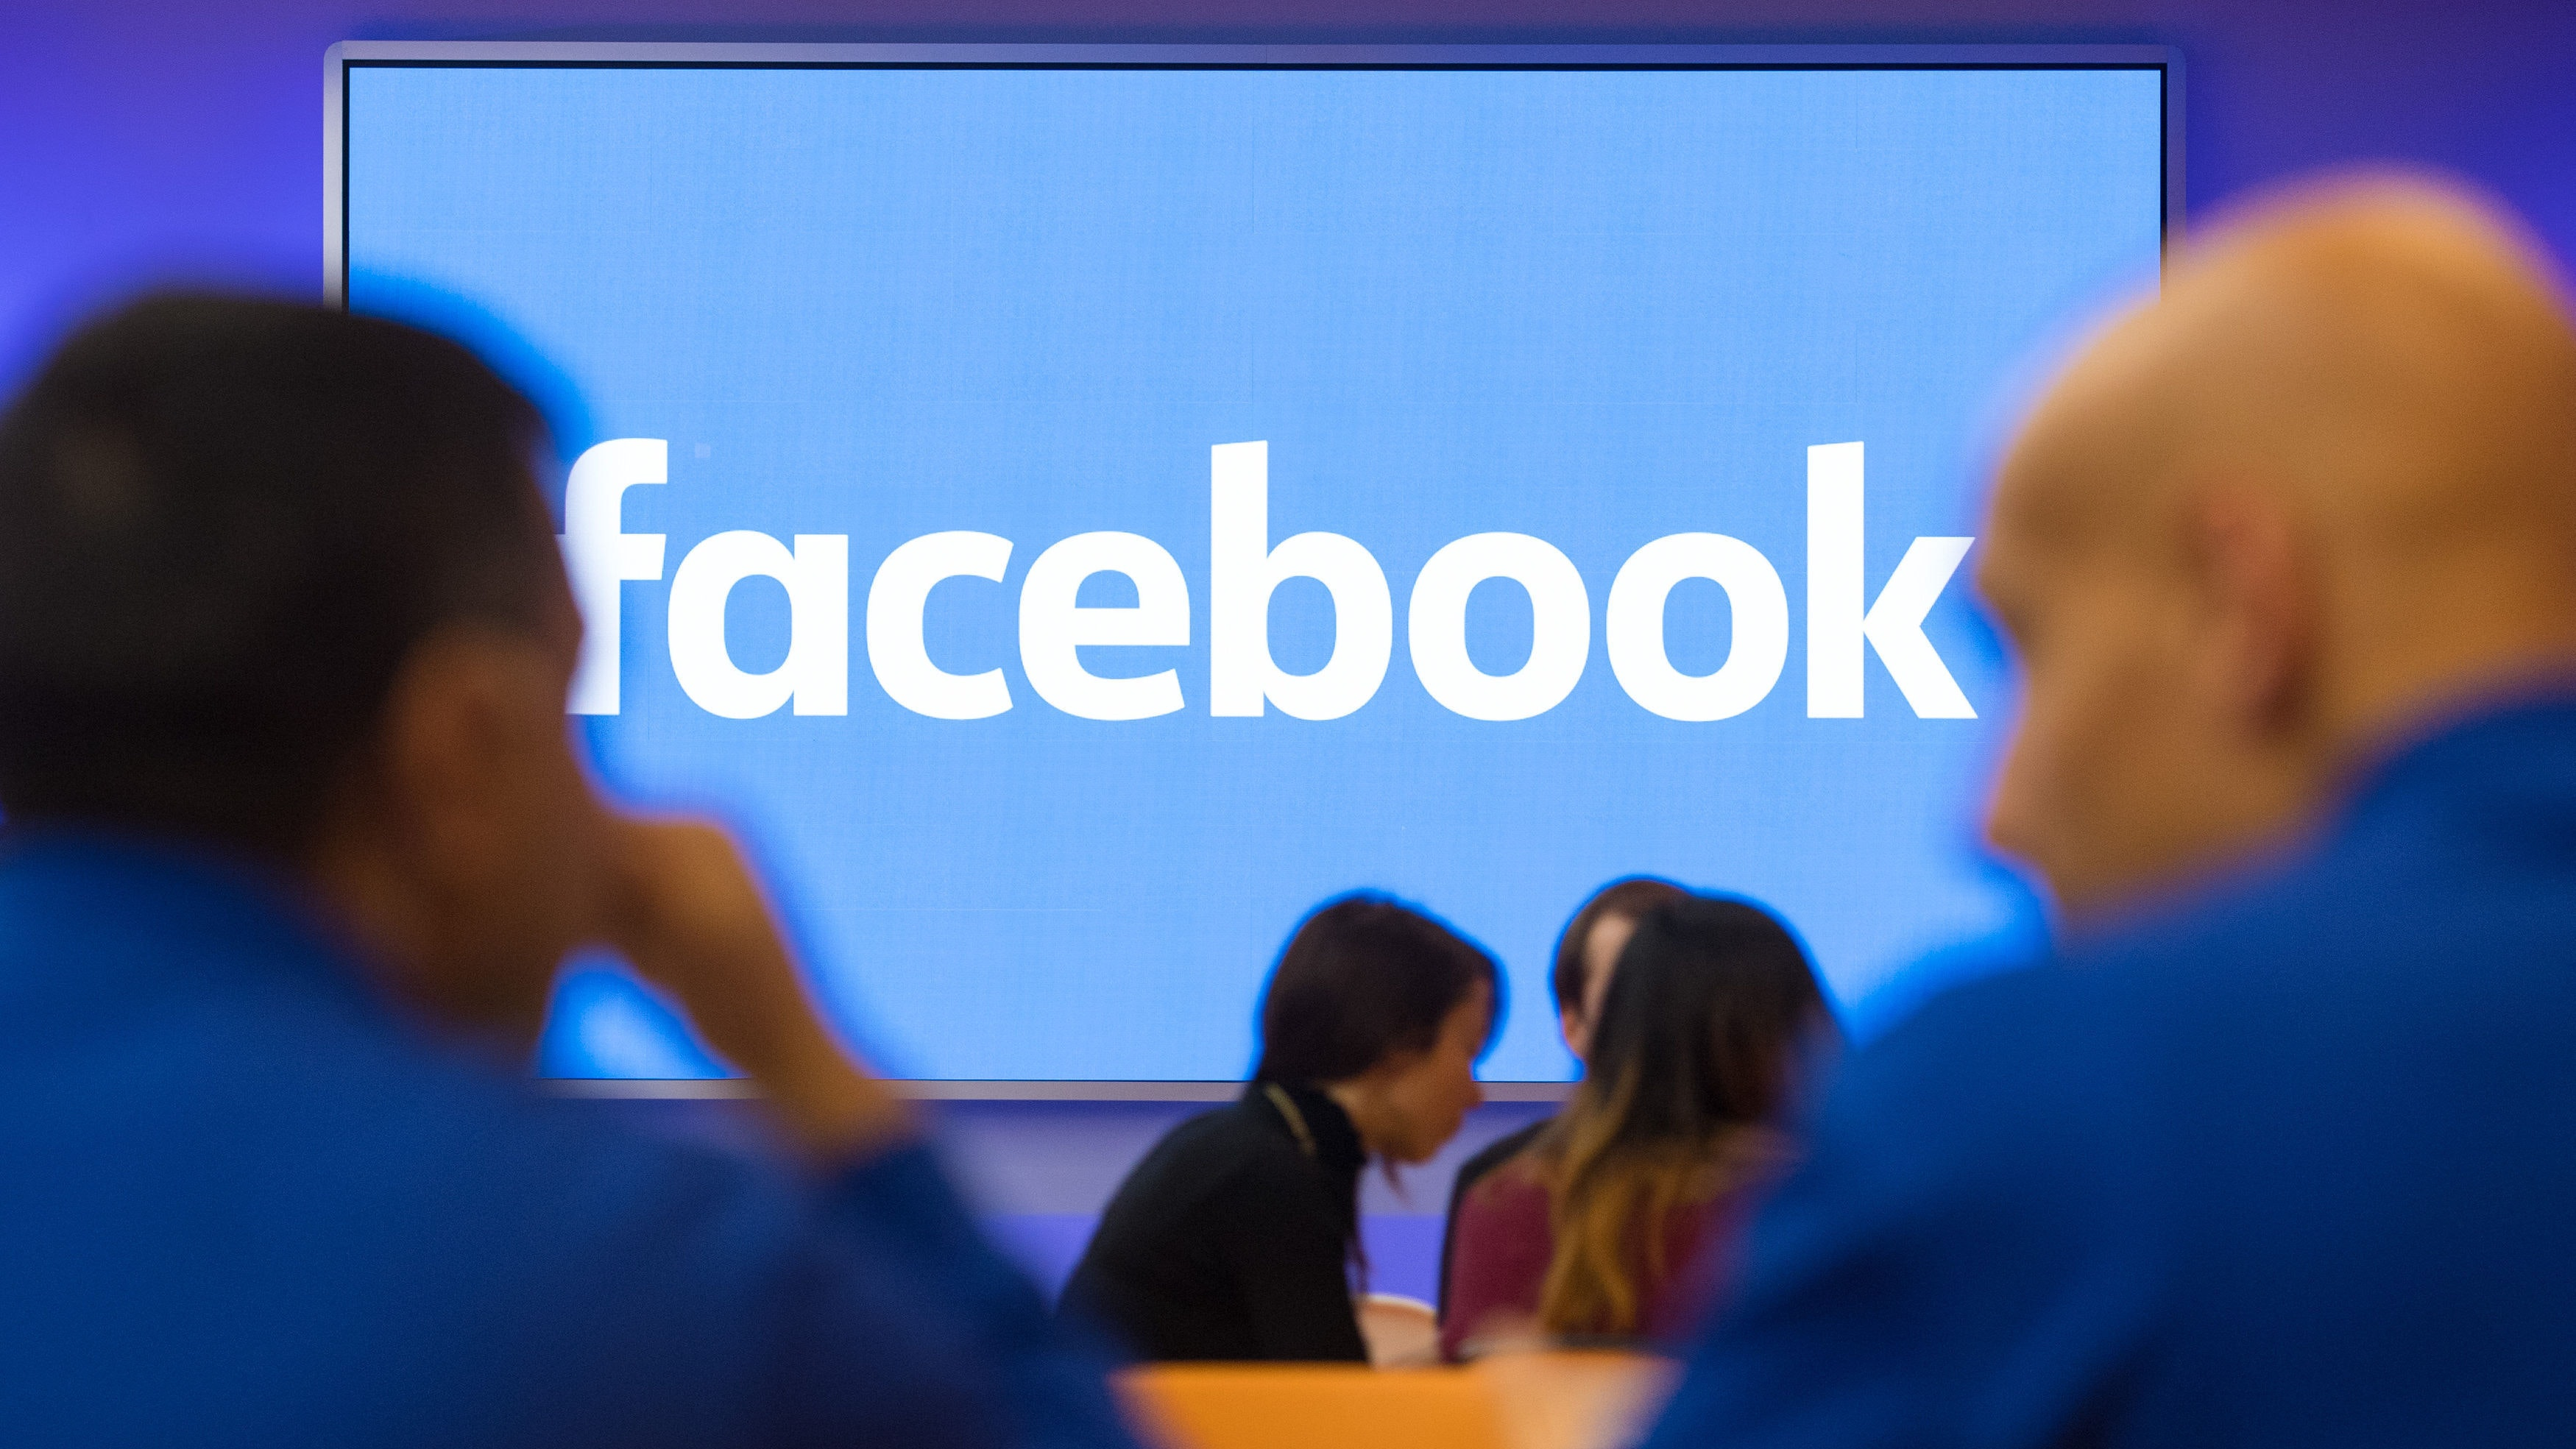 Facebook banning ads that promote cryptocurrencies, ICOs and binary options